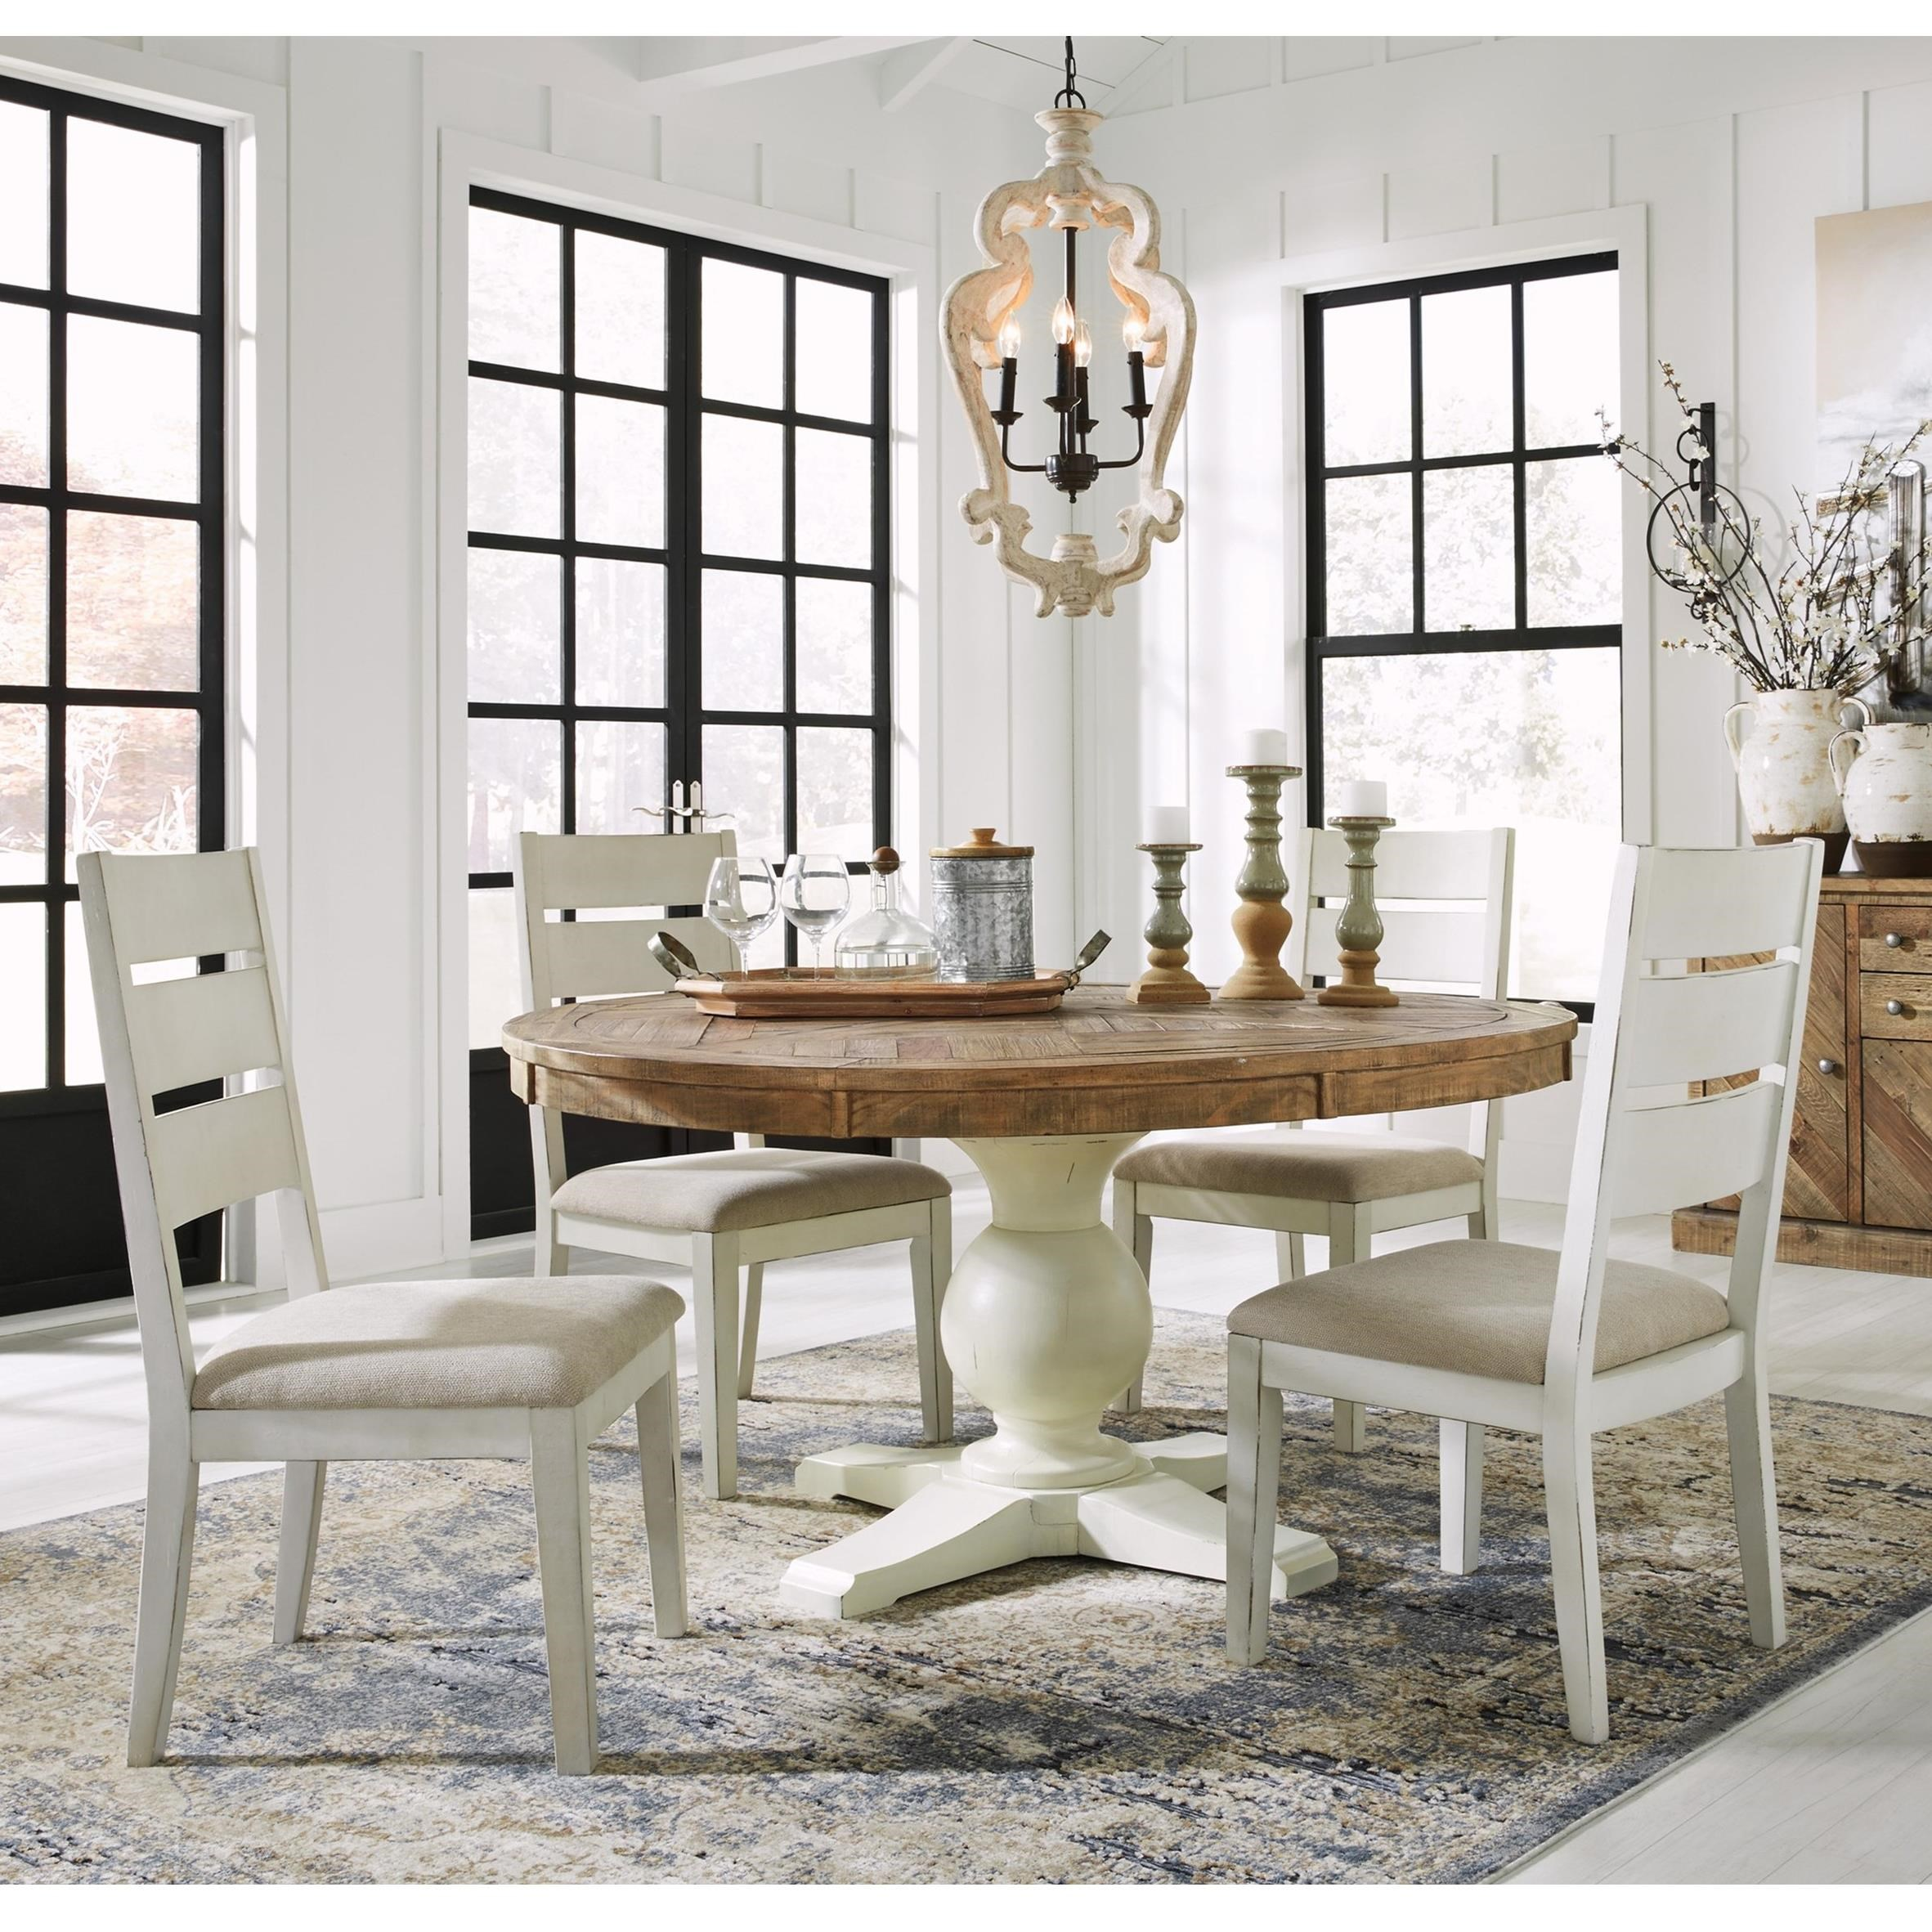 Grindleburg Dining Room Table Round: Grindleburg 5 Piece Round Table And Chair Set